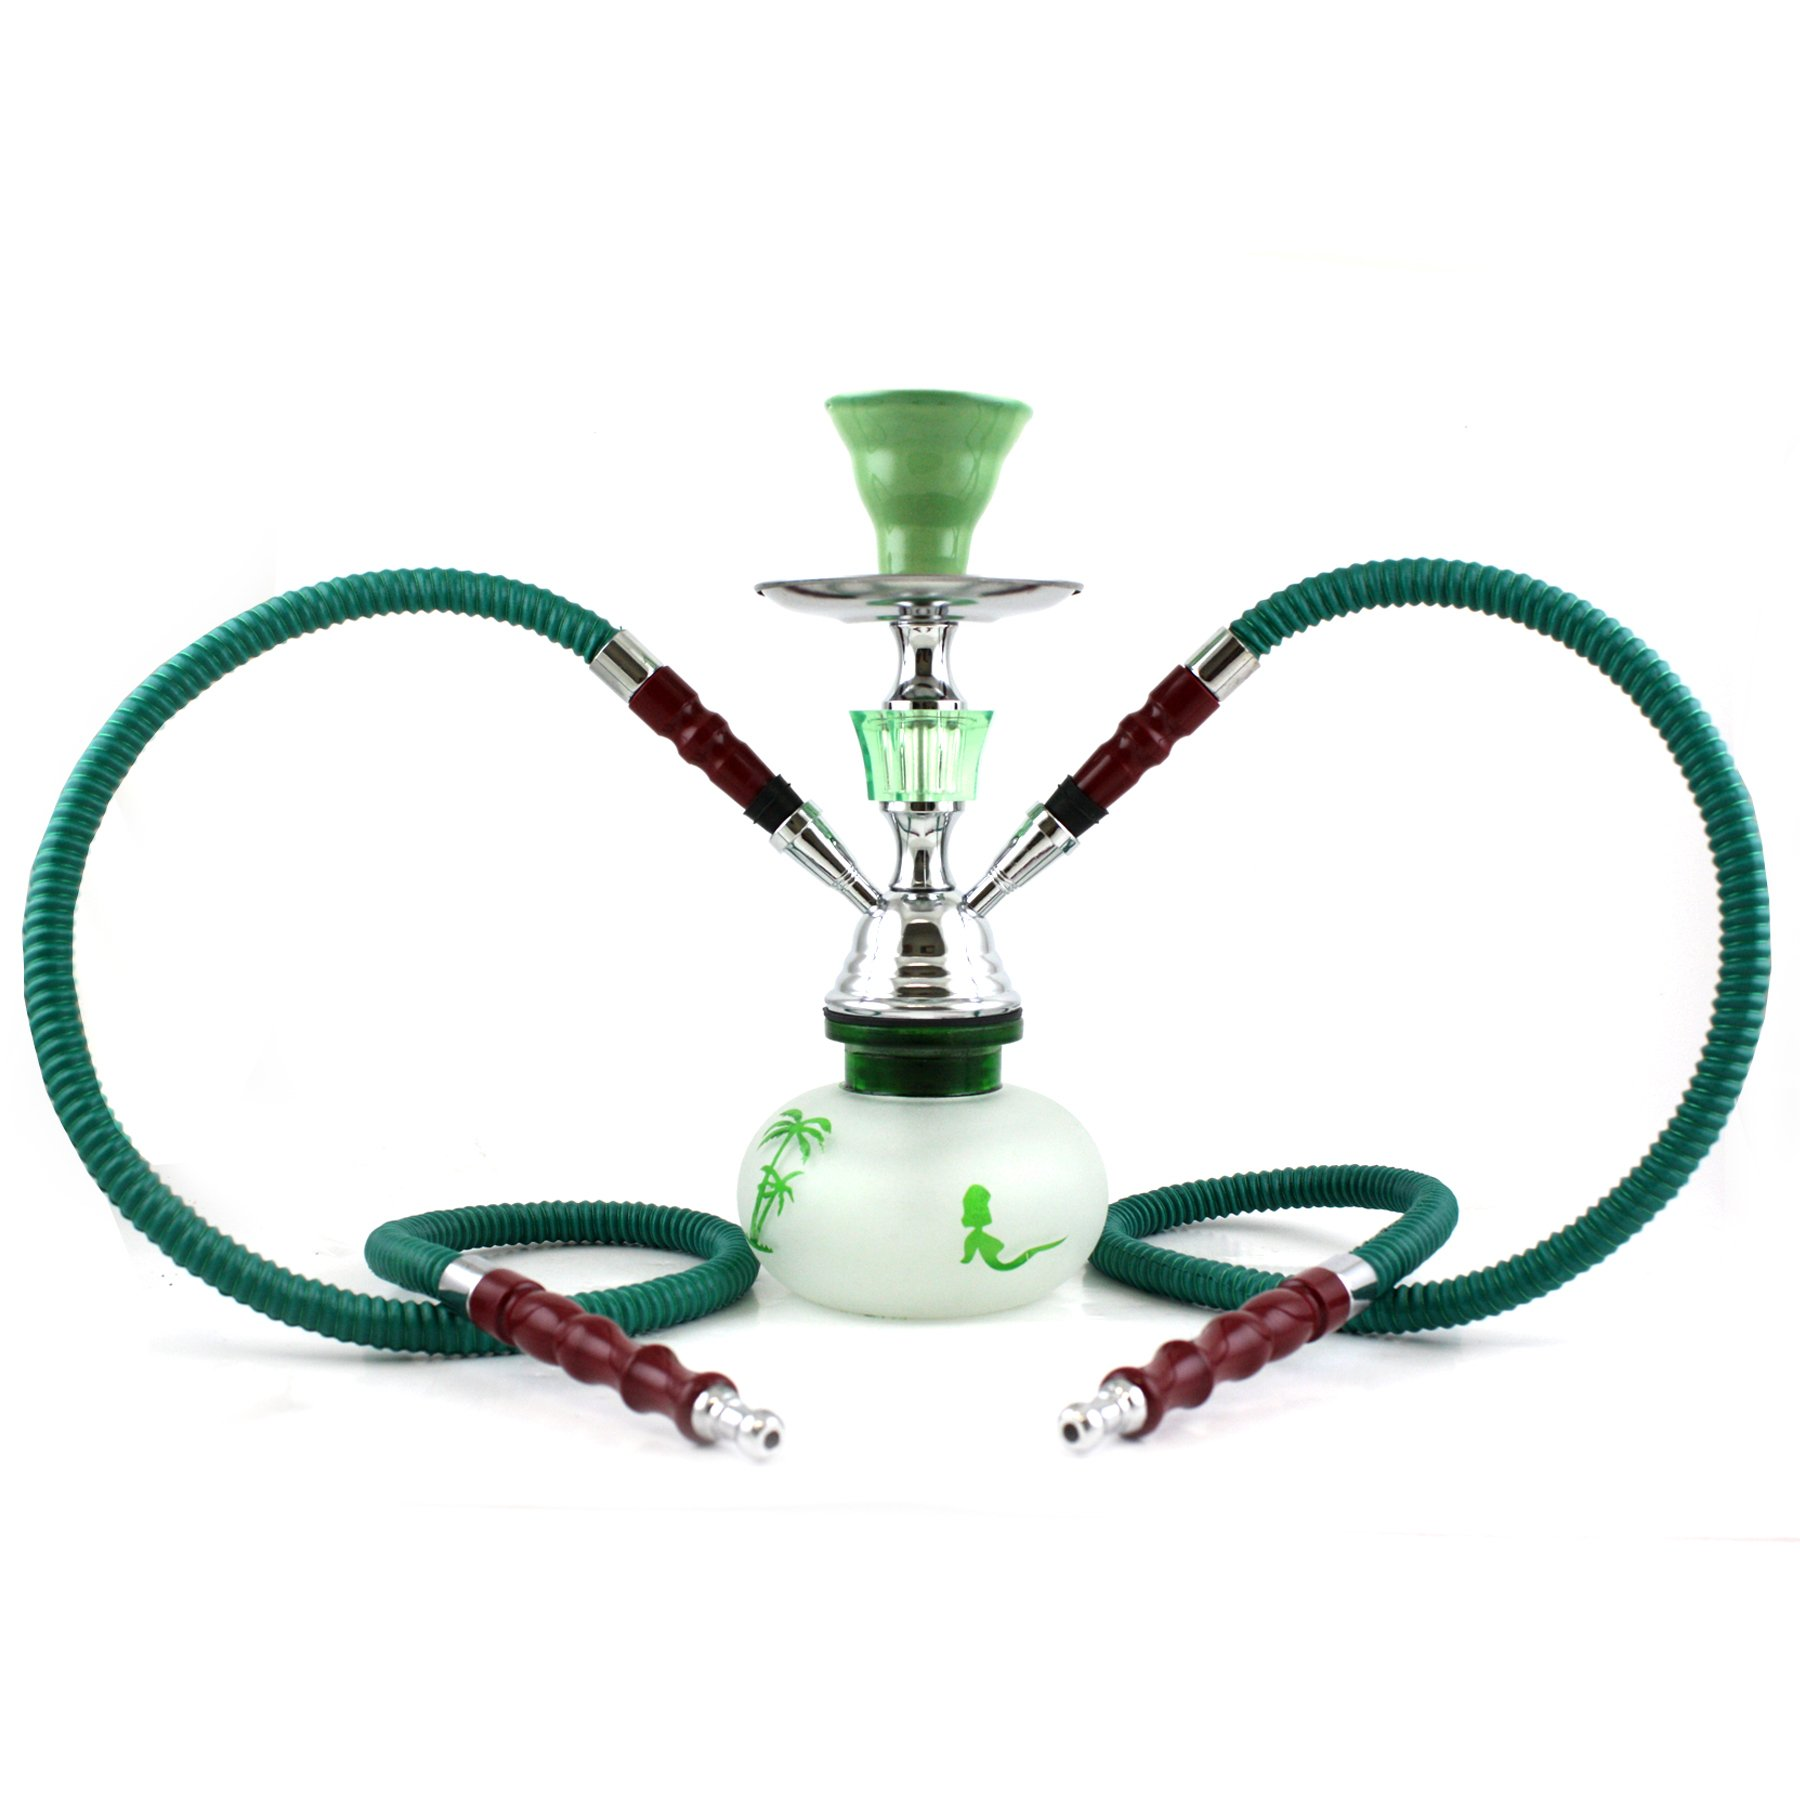 NeverXhale Pumpkin Series: 10'' 2 Hose Hookah Shisha - Pumpkin Glass Vase - Pick Your Color/Design (Green Oasis)